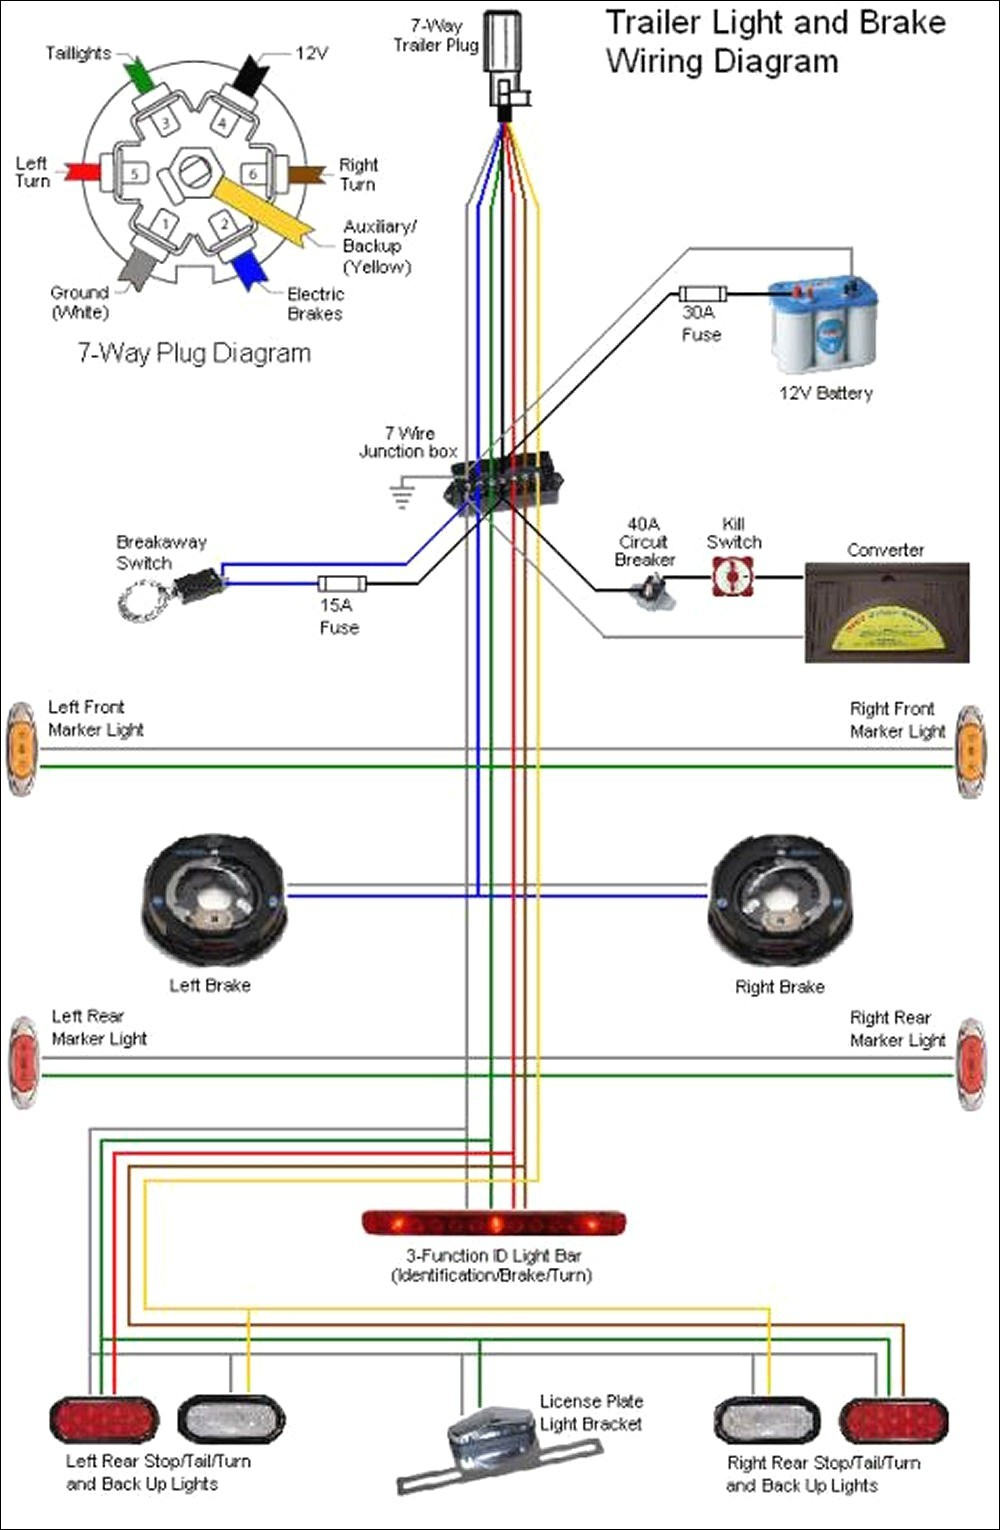 Fabulous Ford 7 Pin Trailer Wiring Diagram Basic Electronics Wiring Diagram Wiring Cloud Faunaidewilluminateatxorg